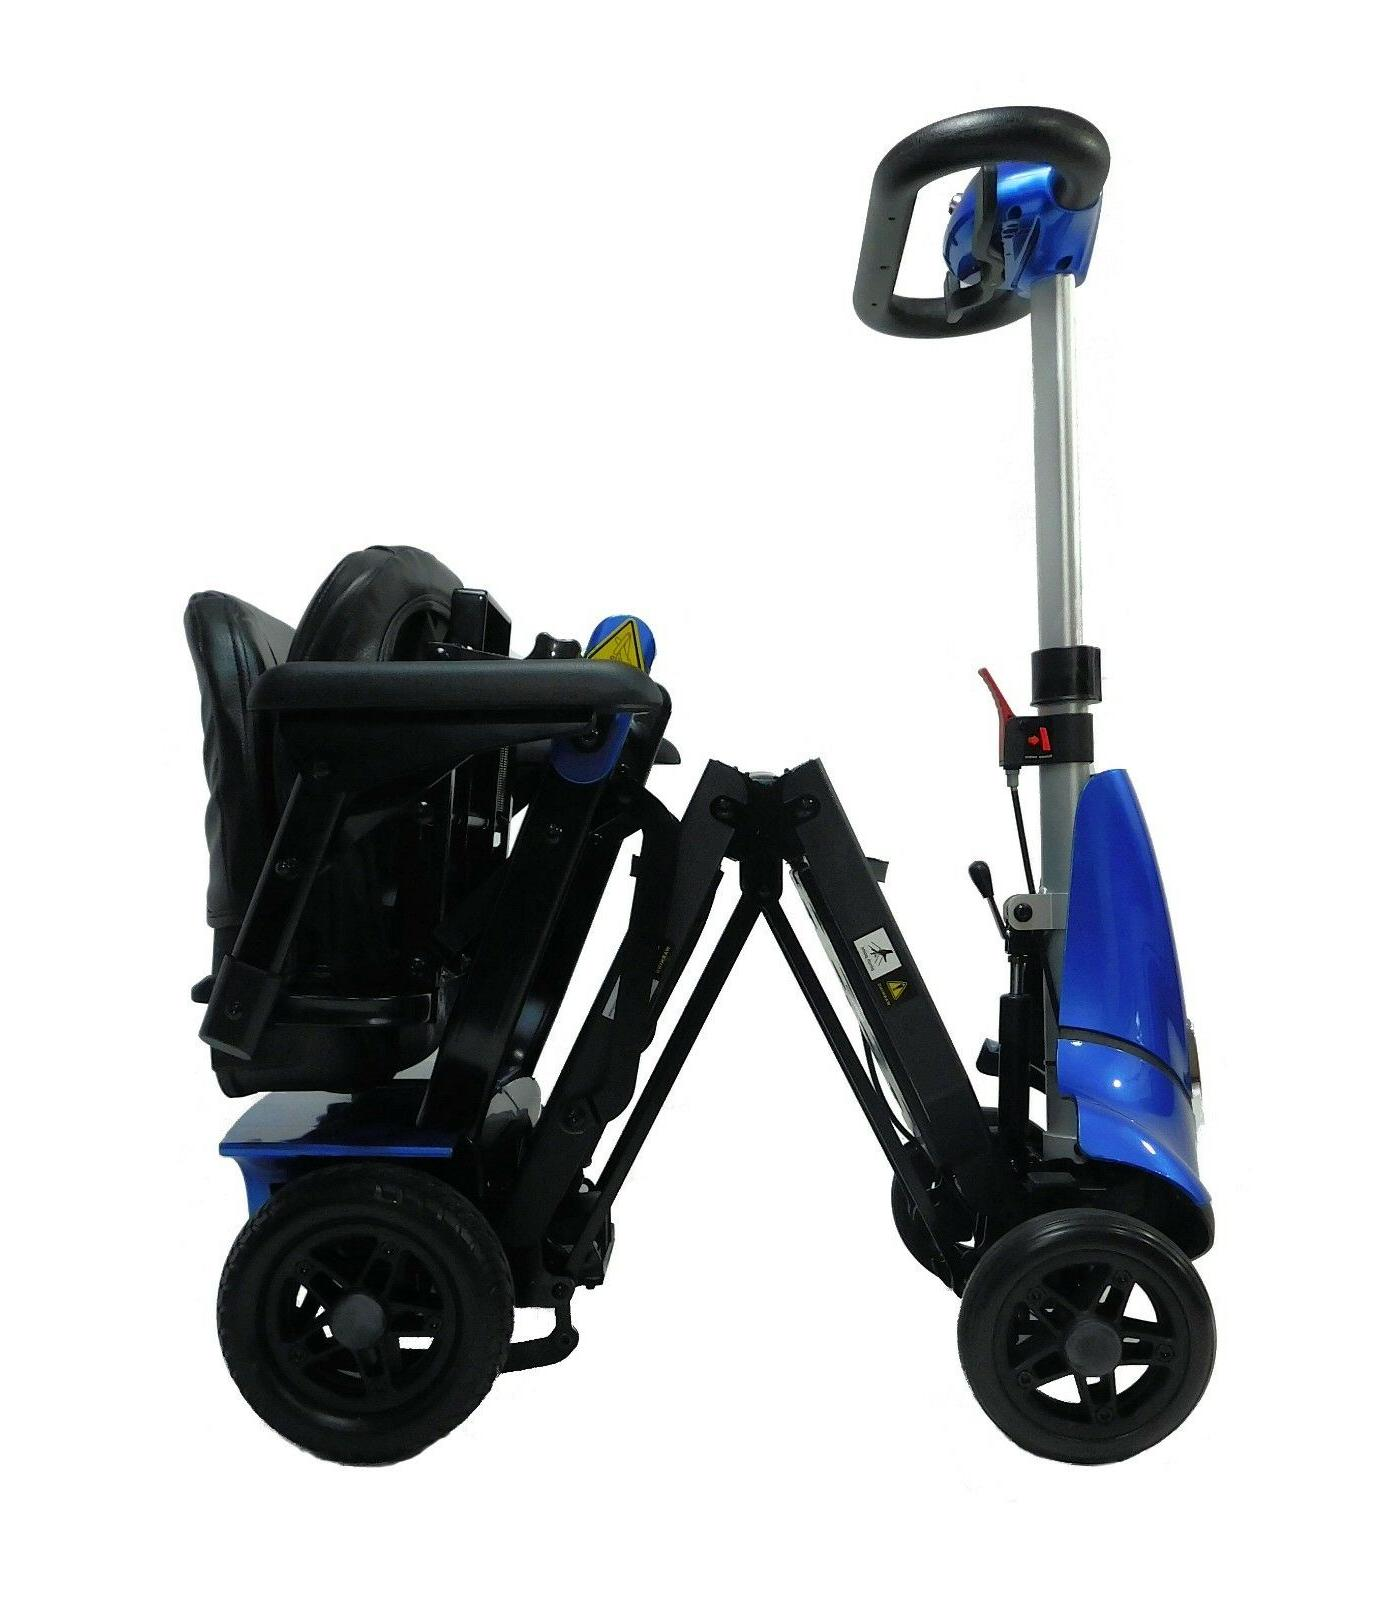 Solax MOBIE PLUS Folding Scooter